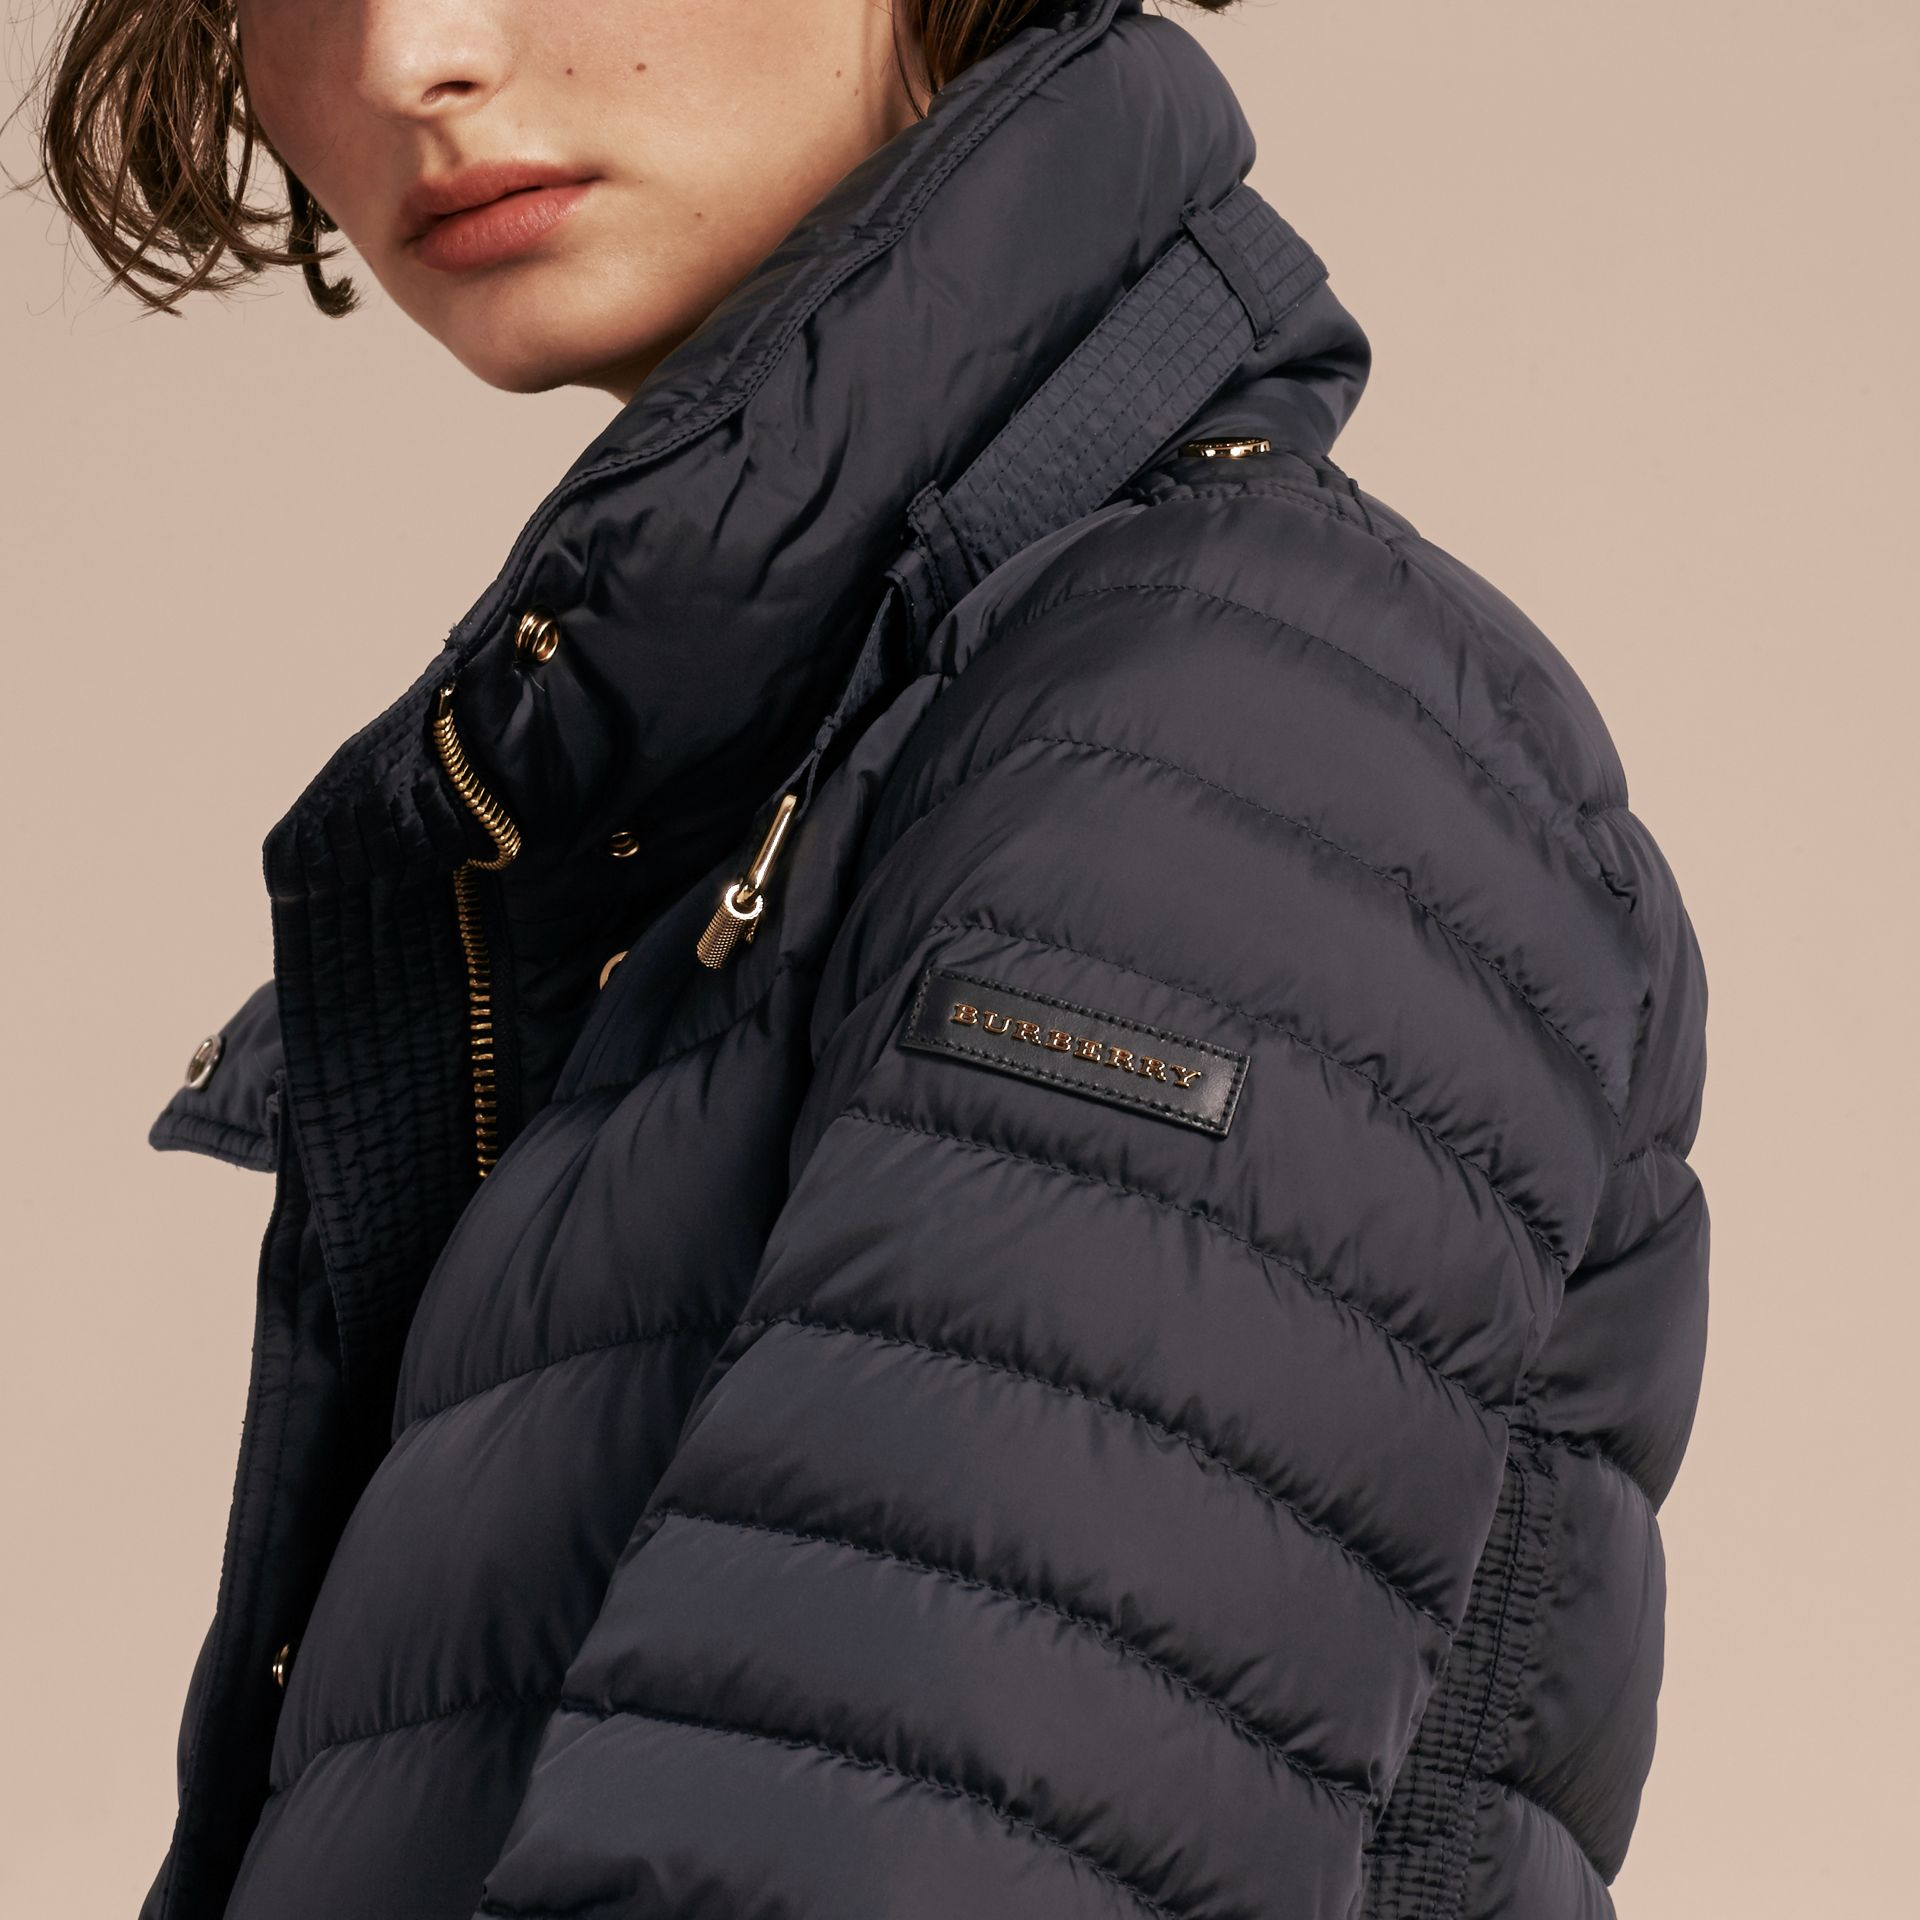 Navy Down-filled Puffer Jacket with Packaway Hood Navy - gallery image 5